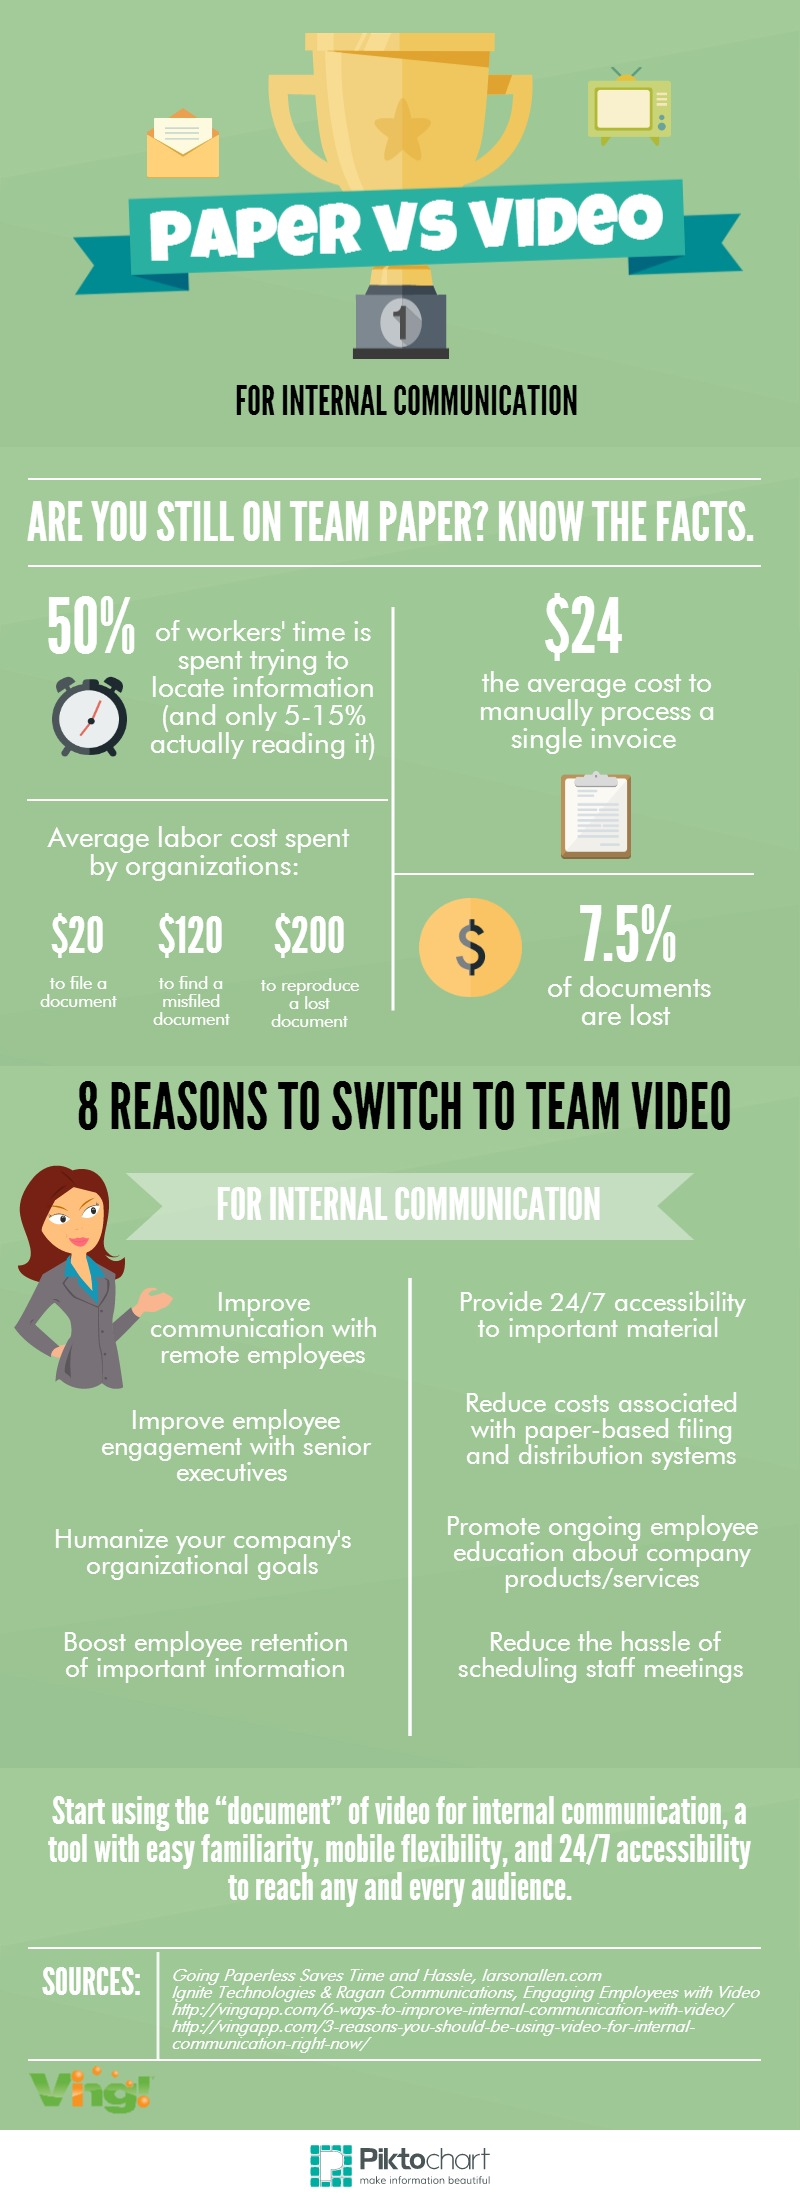 paper vs video and internal communication tools